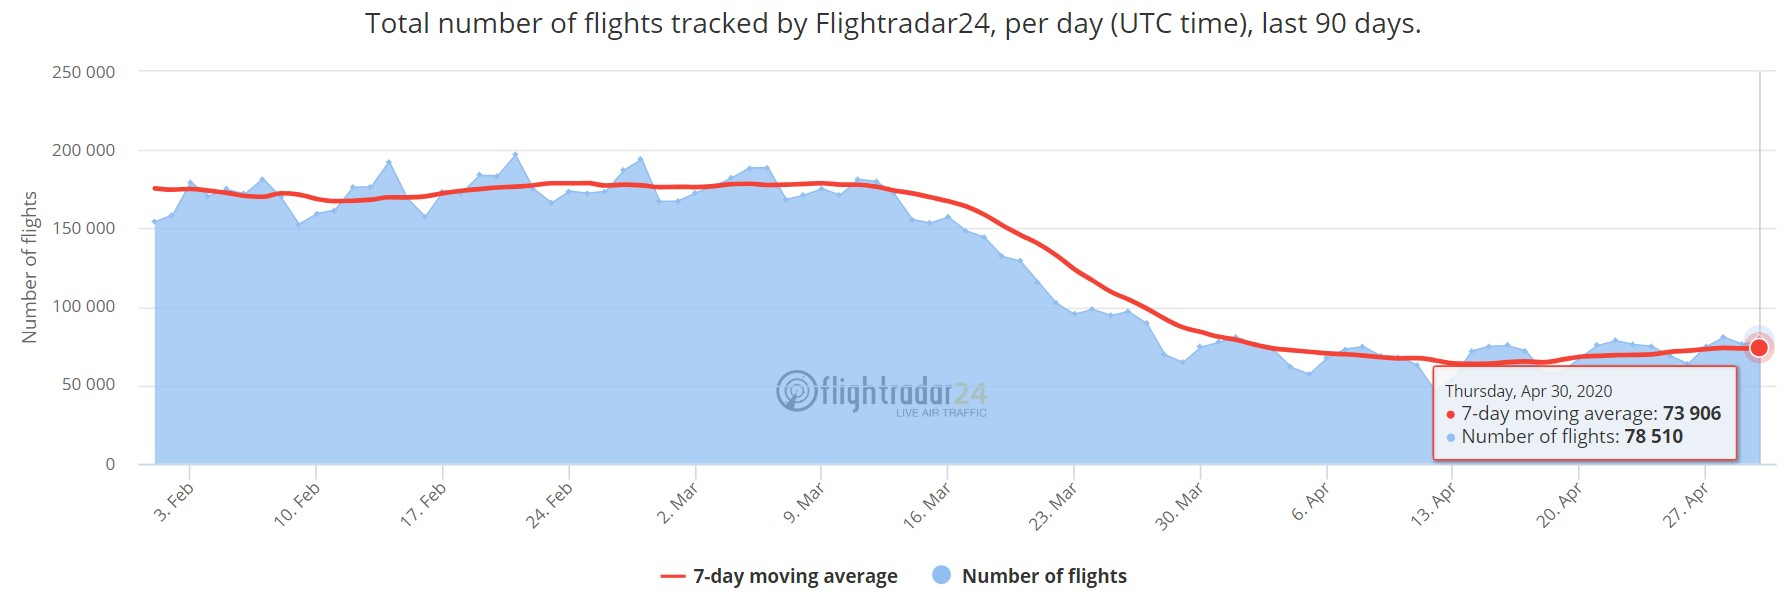 The total number of flights tracked by Flightradar24, per day (UTC time), last 90 days: